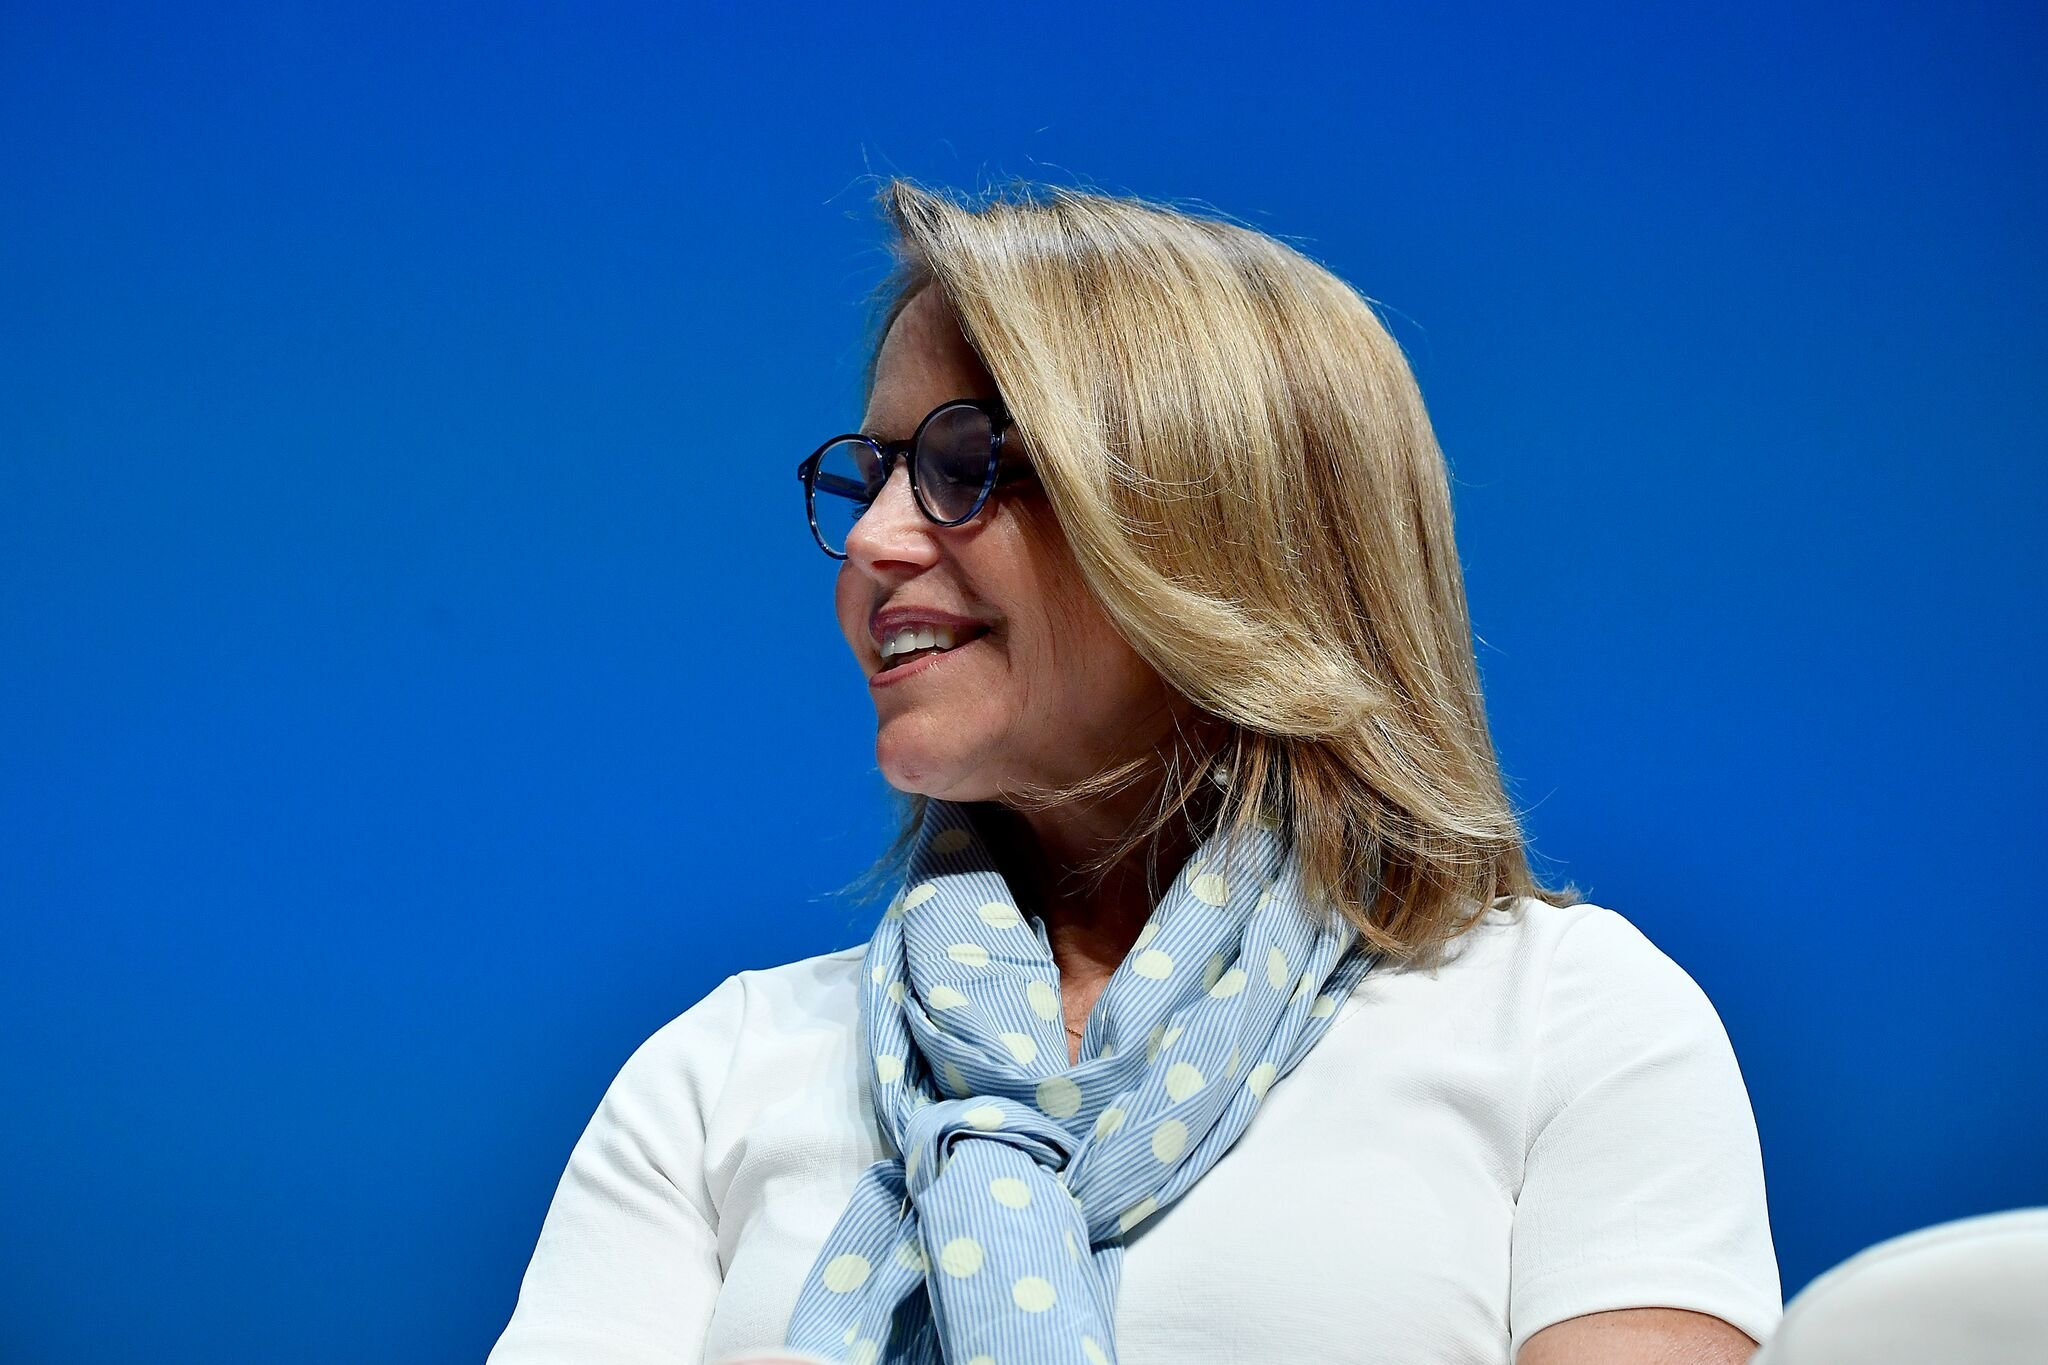 Katie Couric speaks onstage during the P&G session at the Cannes Lions Festival 2018  | Getty Images